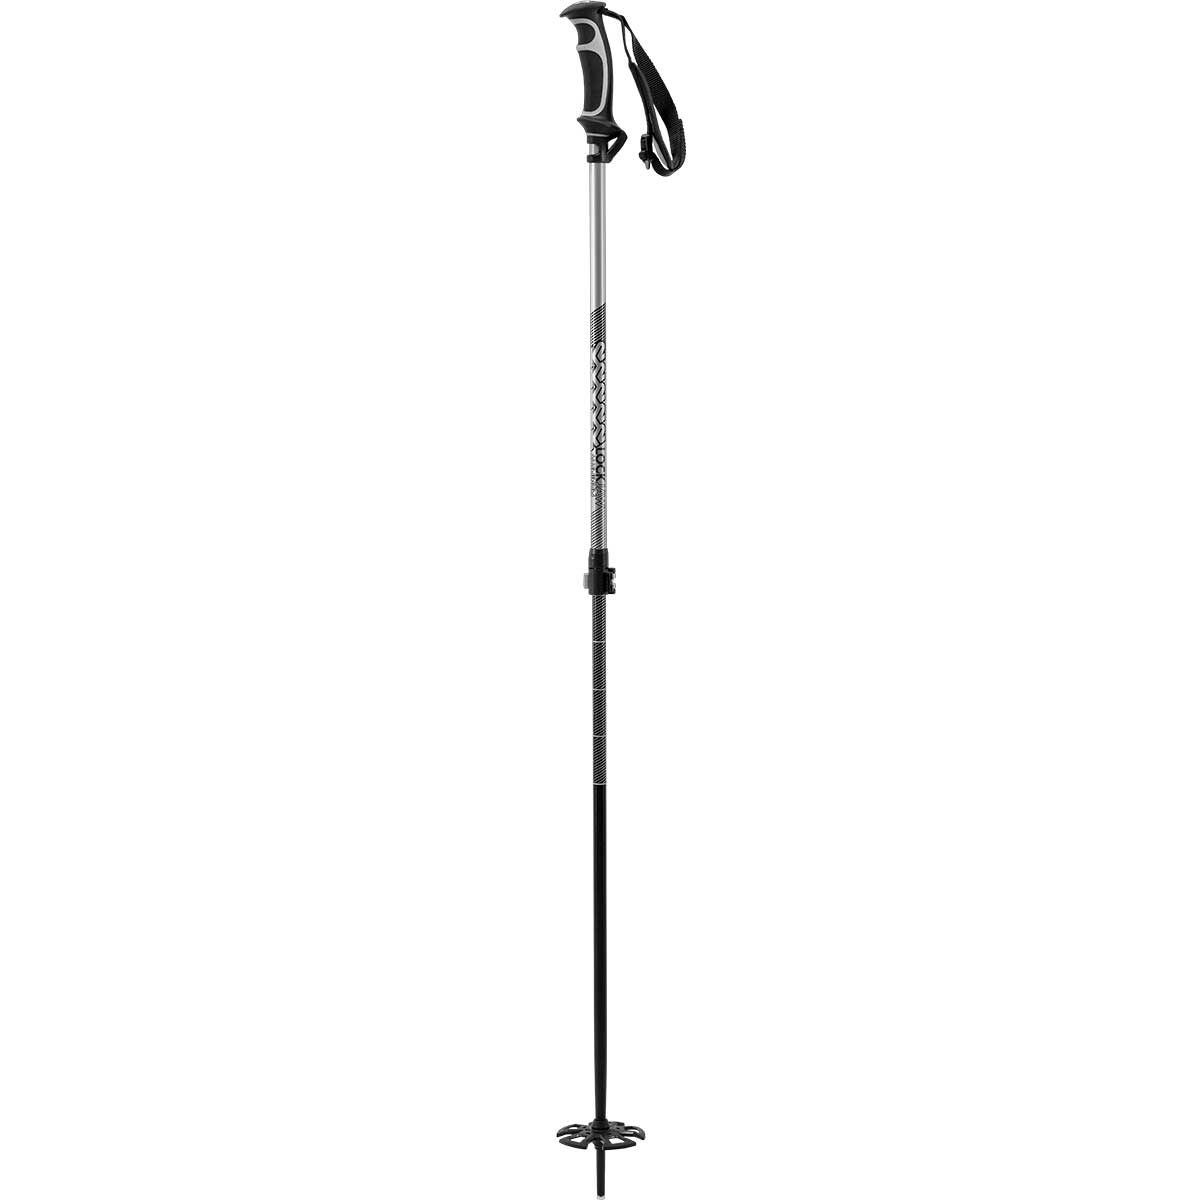 K2 Lockjaw Aluminum ski pole in silver